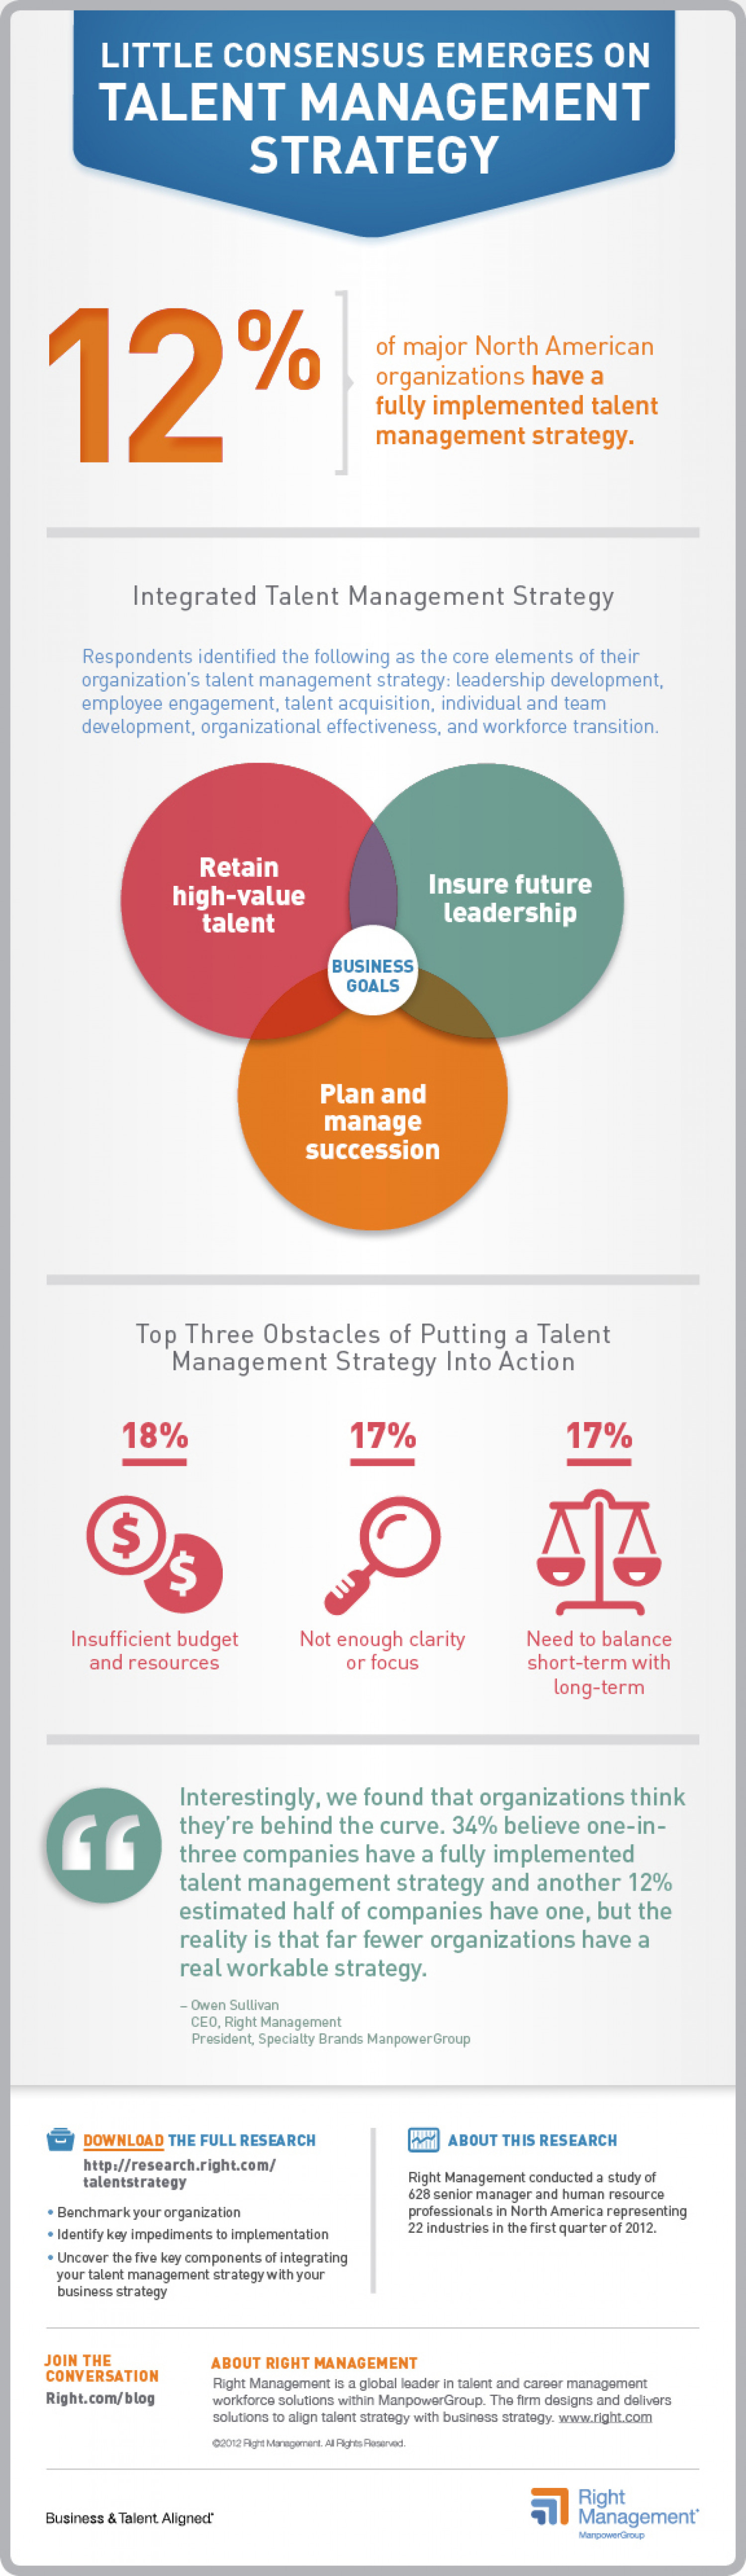 Little Consnsus Emerges on Talent Management Strategy Infographic